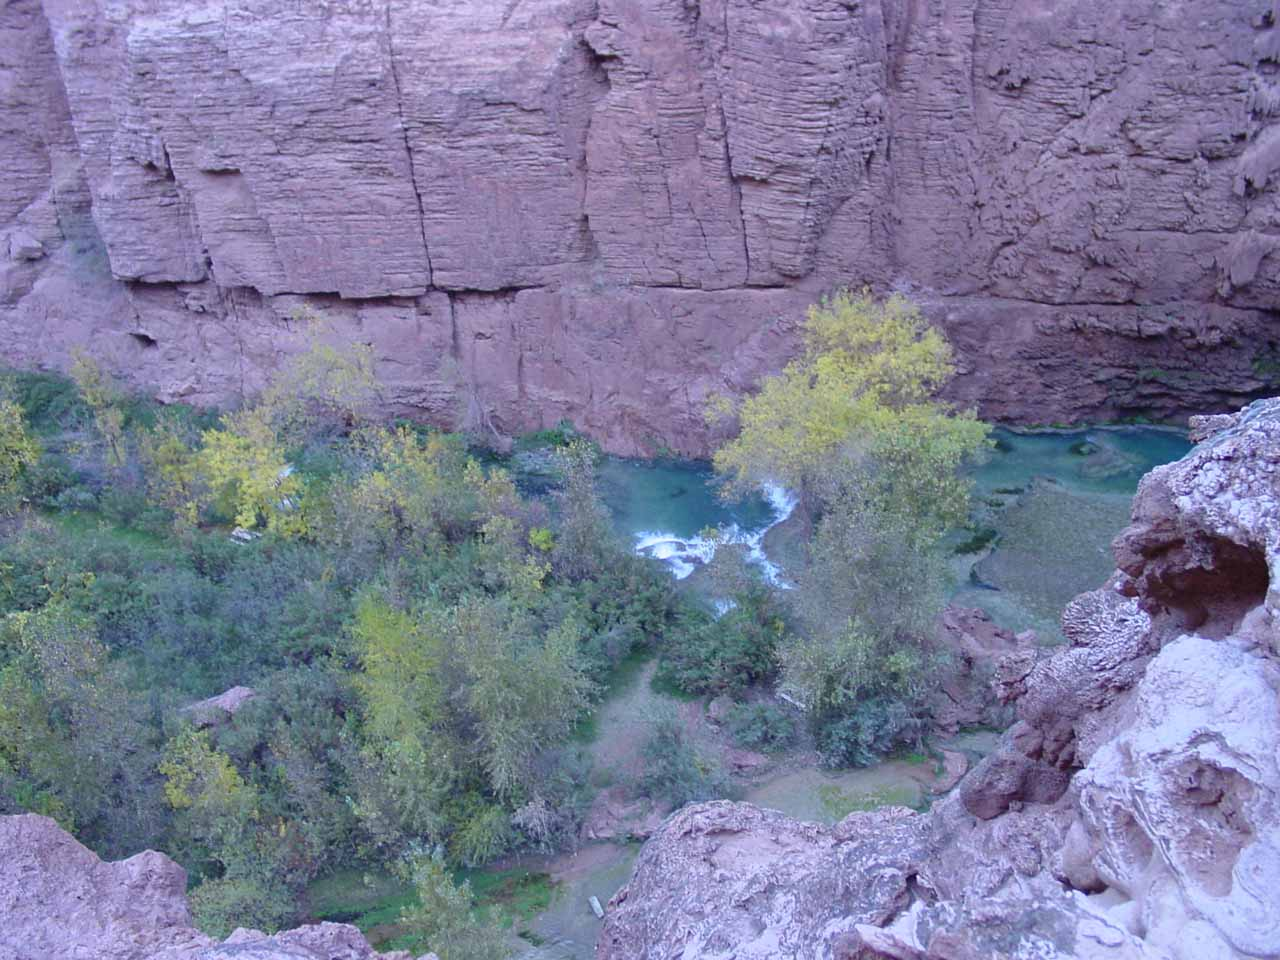 Looking way down at Havasu Creek below Mooney Falls